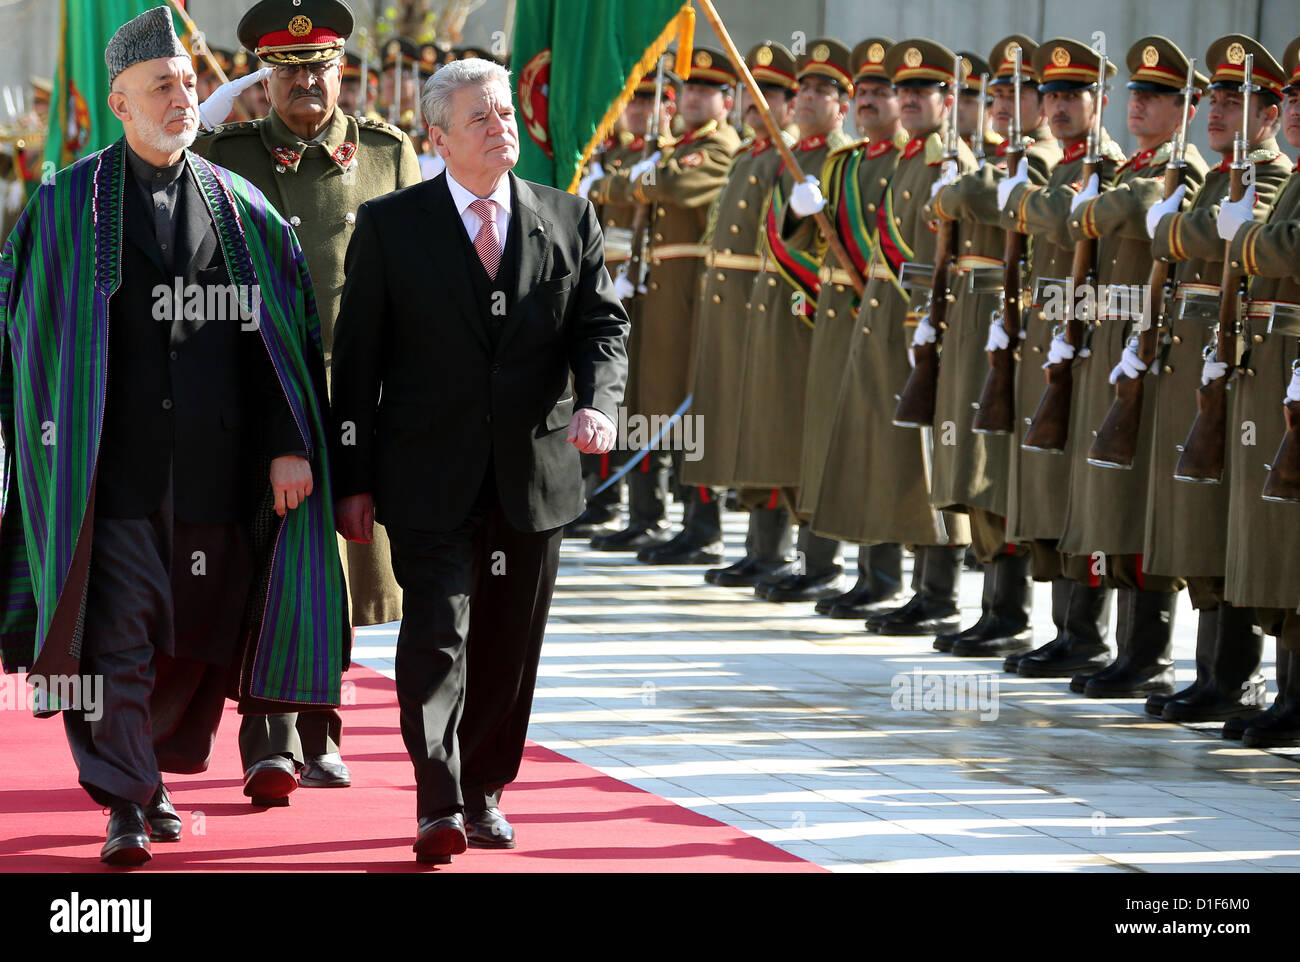 German federal president Joachim Gauck is received by Afghanistan's president Hamid Karzai (L) in Kabul, Afghanistan, Stock Photo